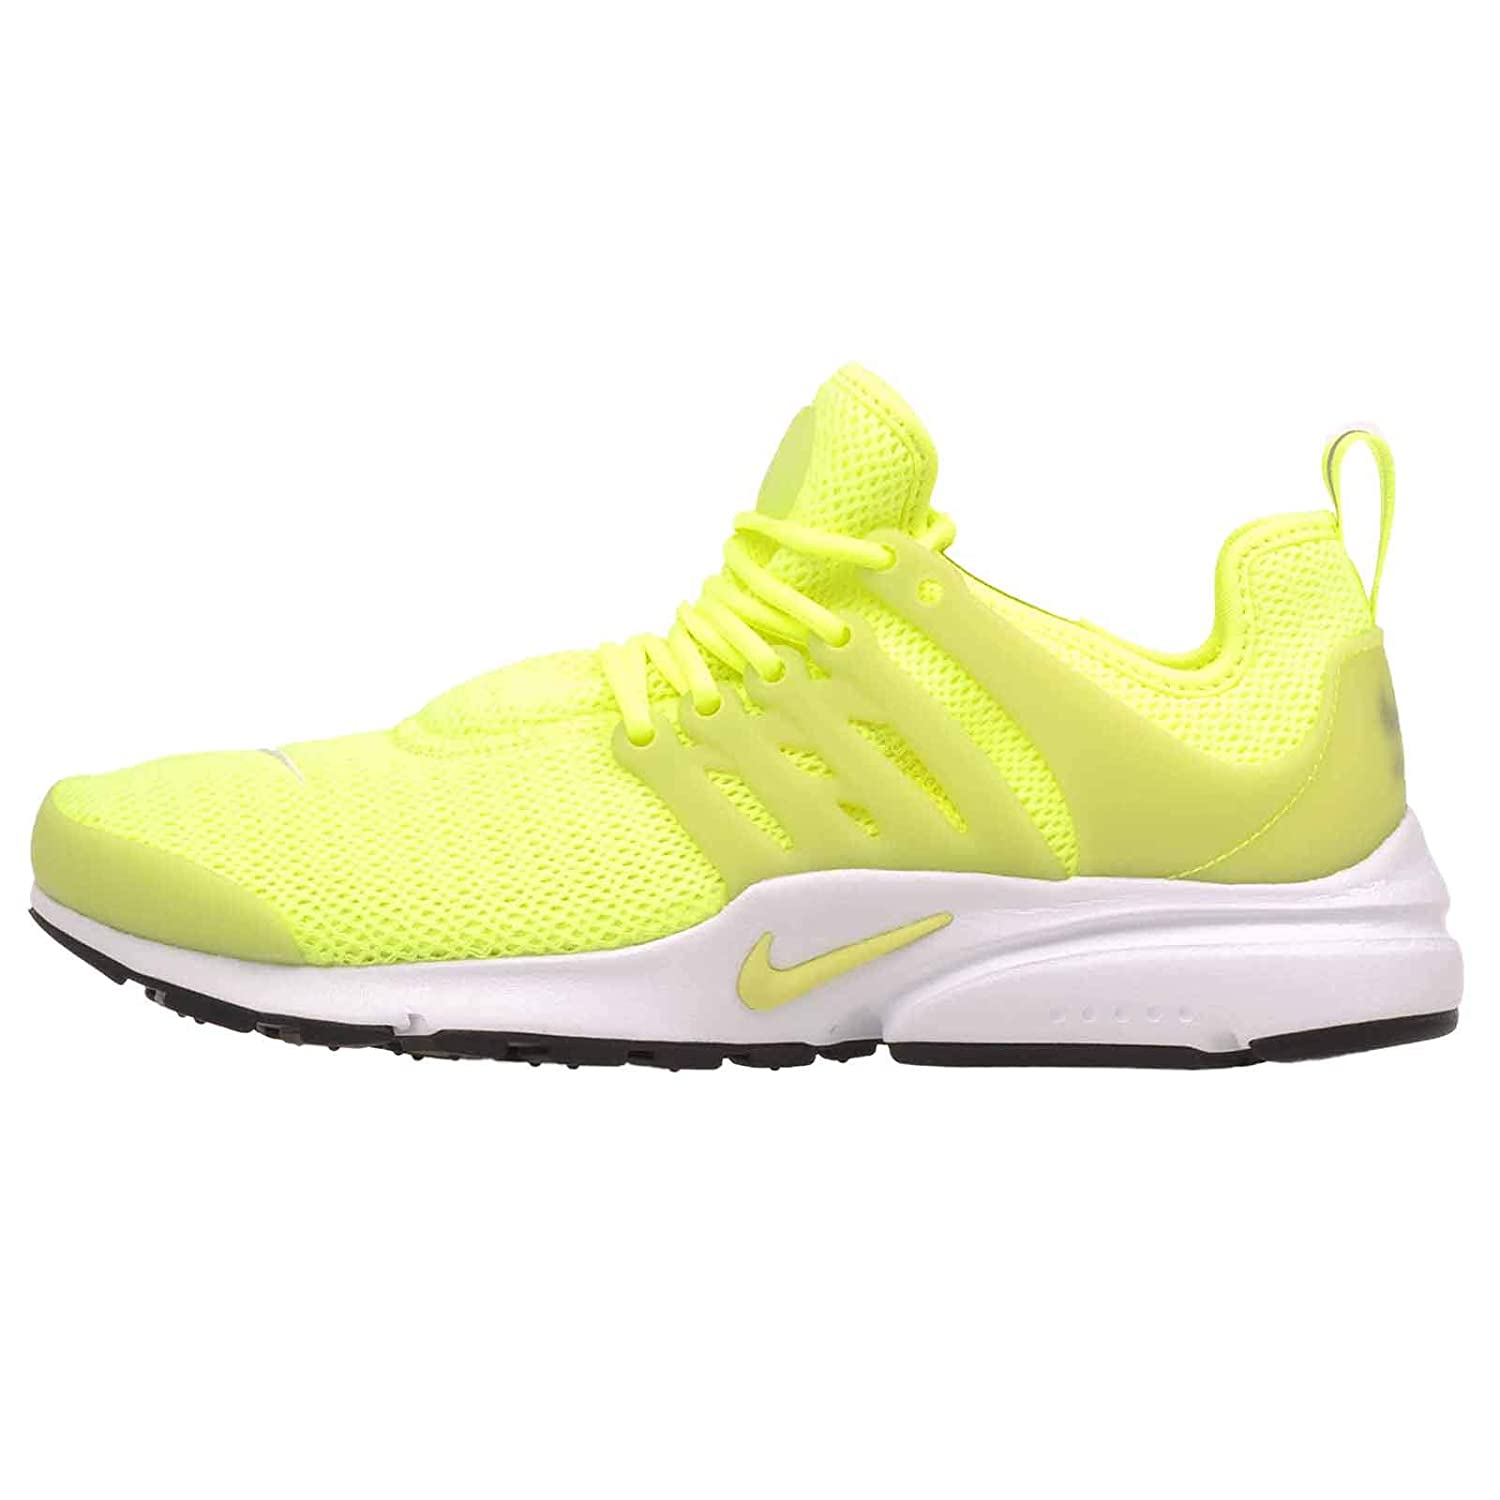 save off e2207 418b6 Nike Womens Air Presto 878068 700 Volt